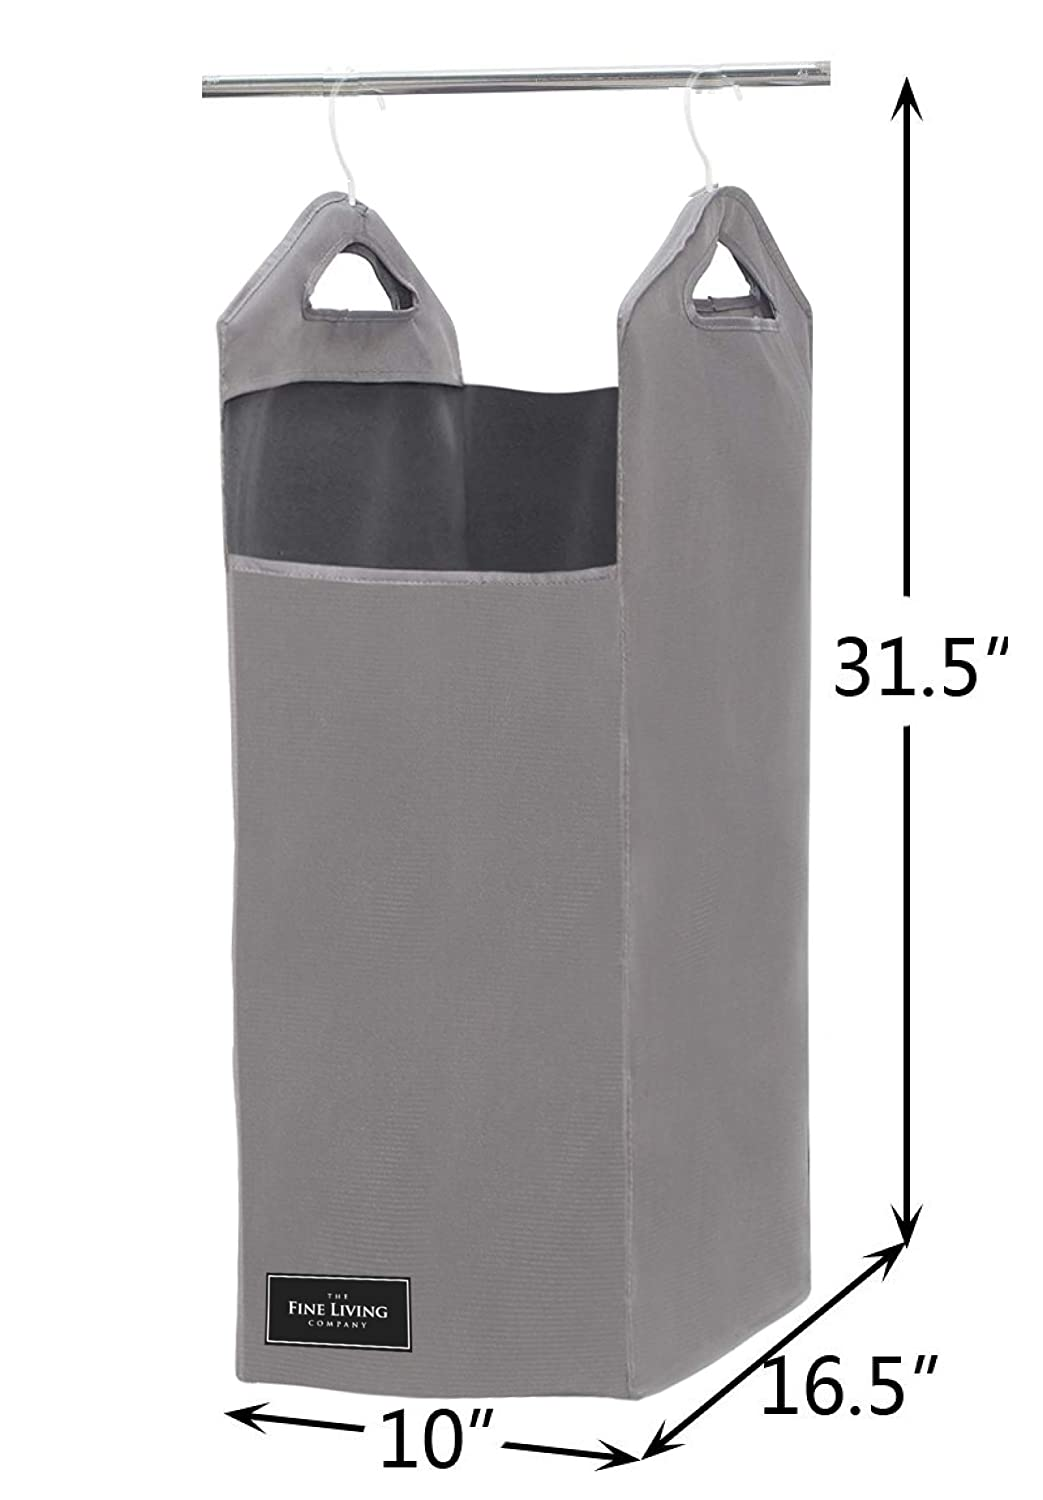 Closet Hanging Laundry Hamper Bag The Fine Living Company USA Included Strong Hangers Open Top Design to Hold More Laundry Than Other Type Bags Space Saving Design in Grey